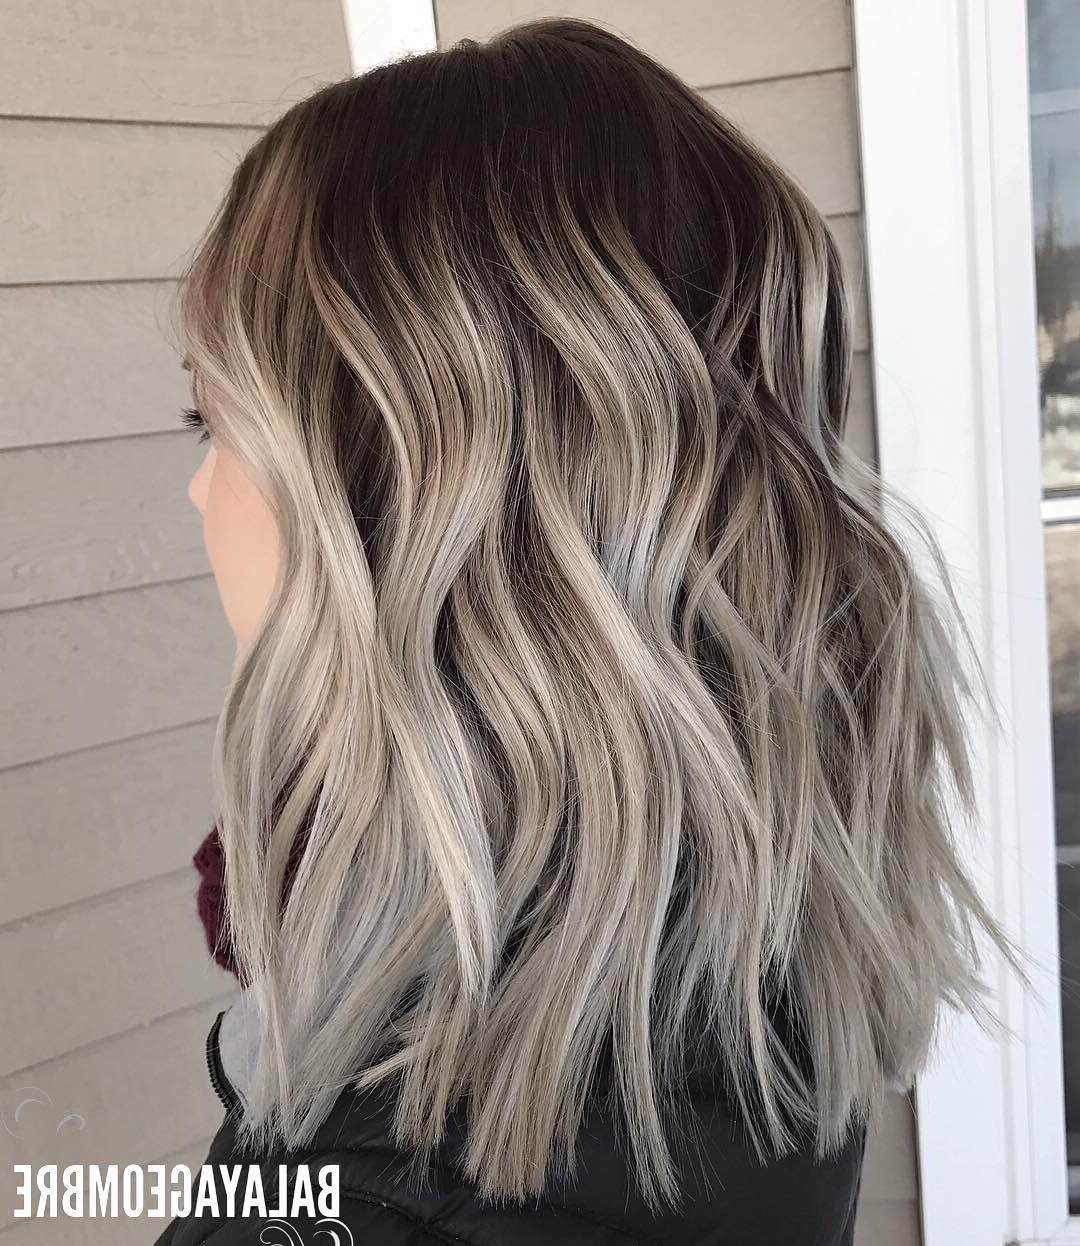 Most Current Mid Length Two Tier Haircuts For Thick Hair Regarding 10 Best Medium Layered Hairstyles 2019 – Brown & Ash Blonde Fashion (View 8 of 20)